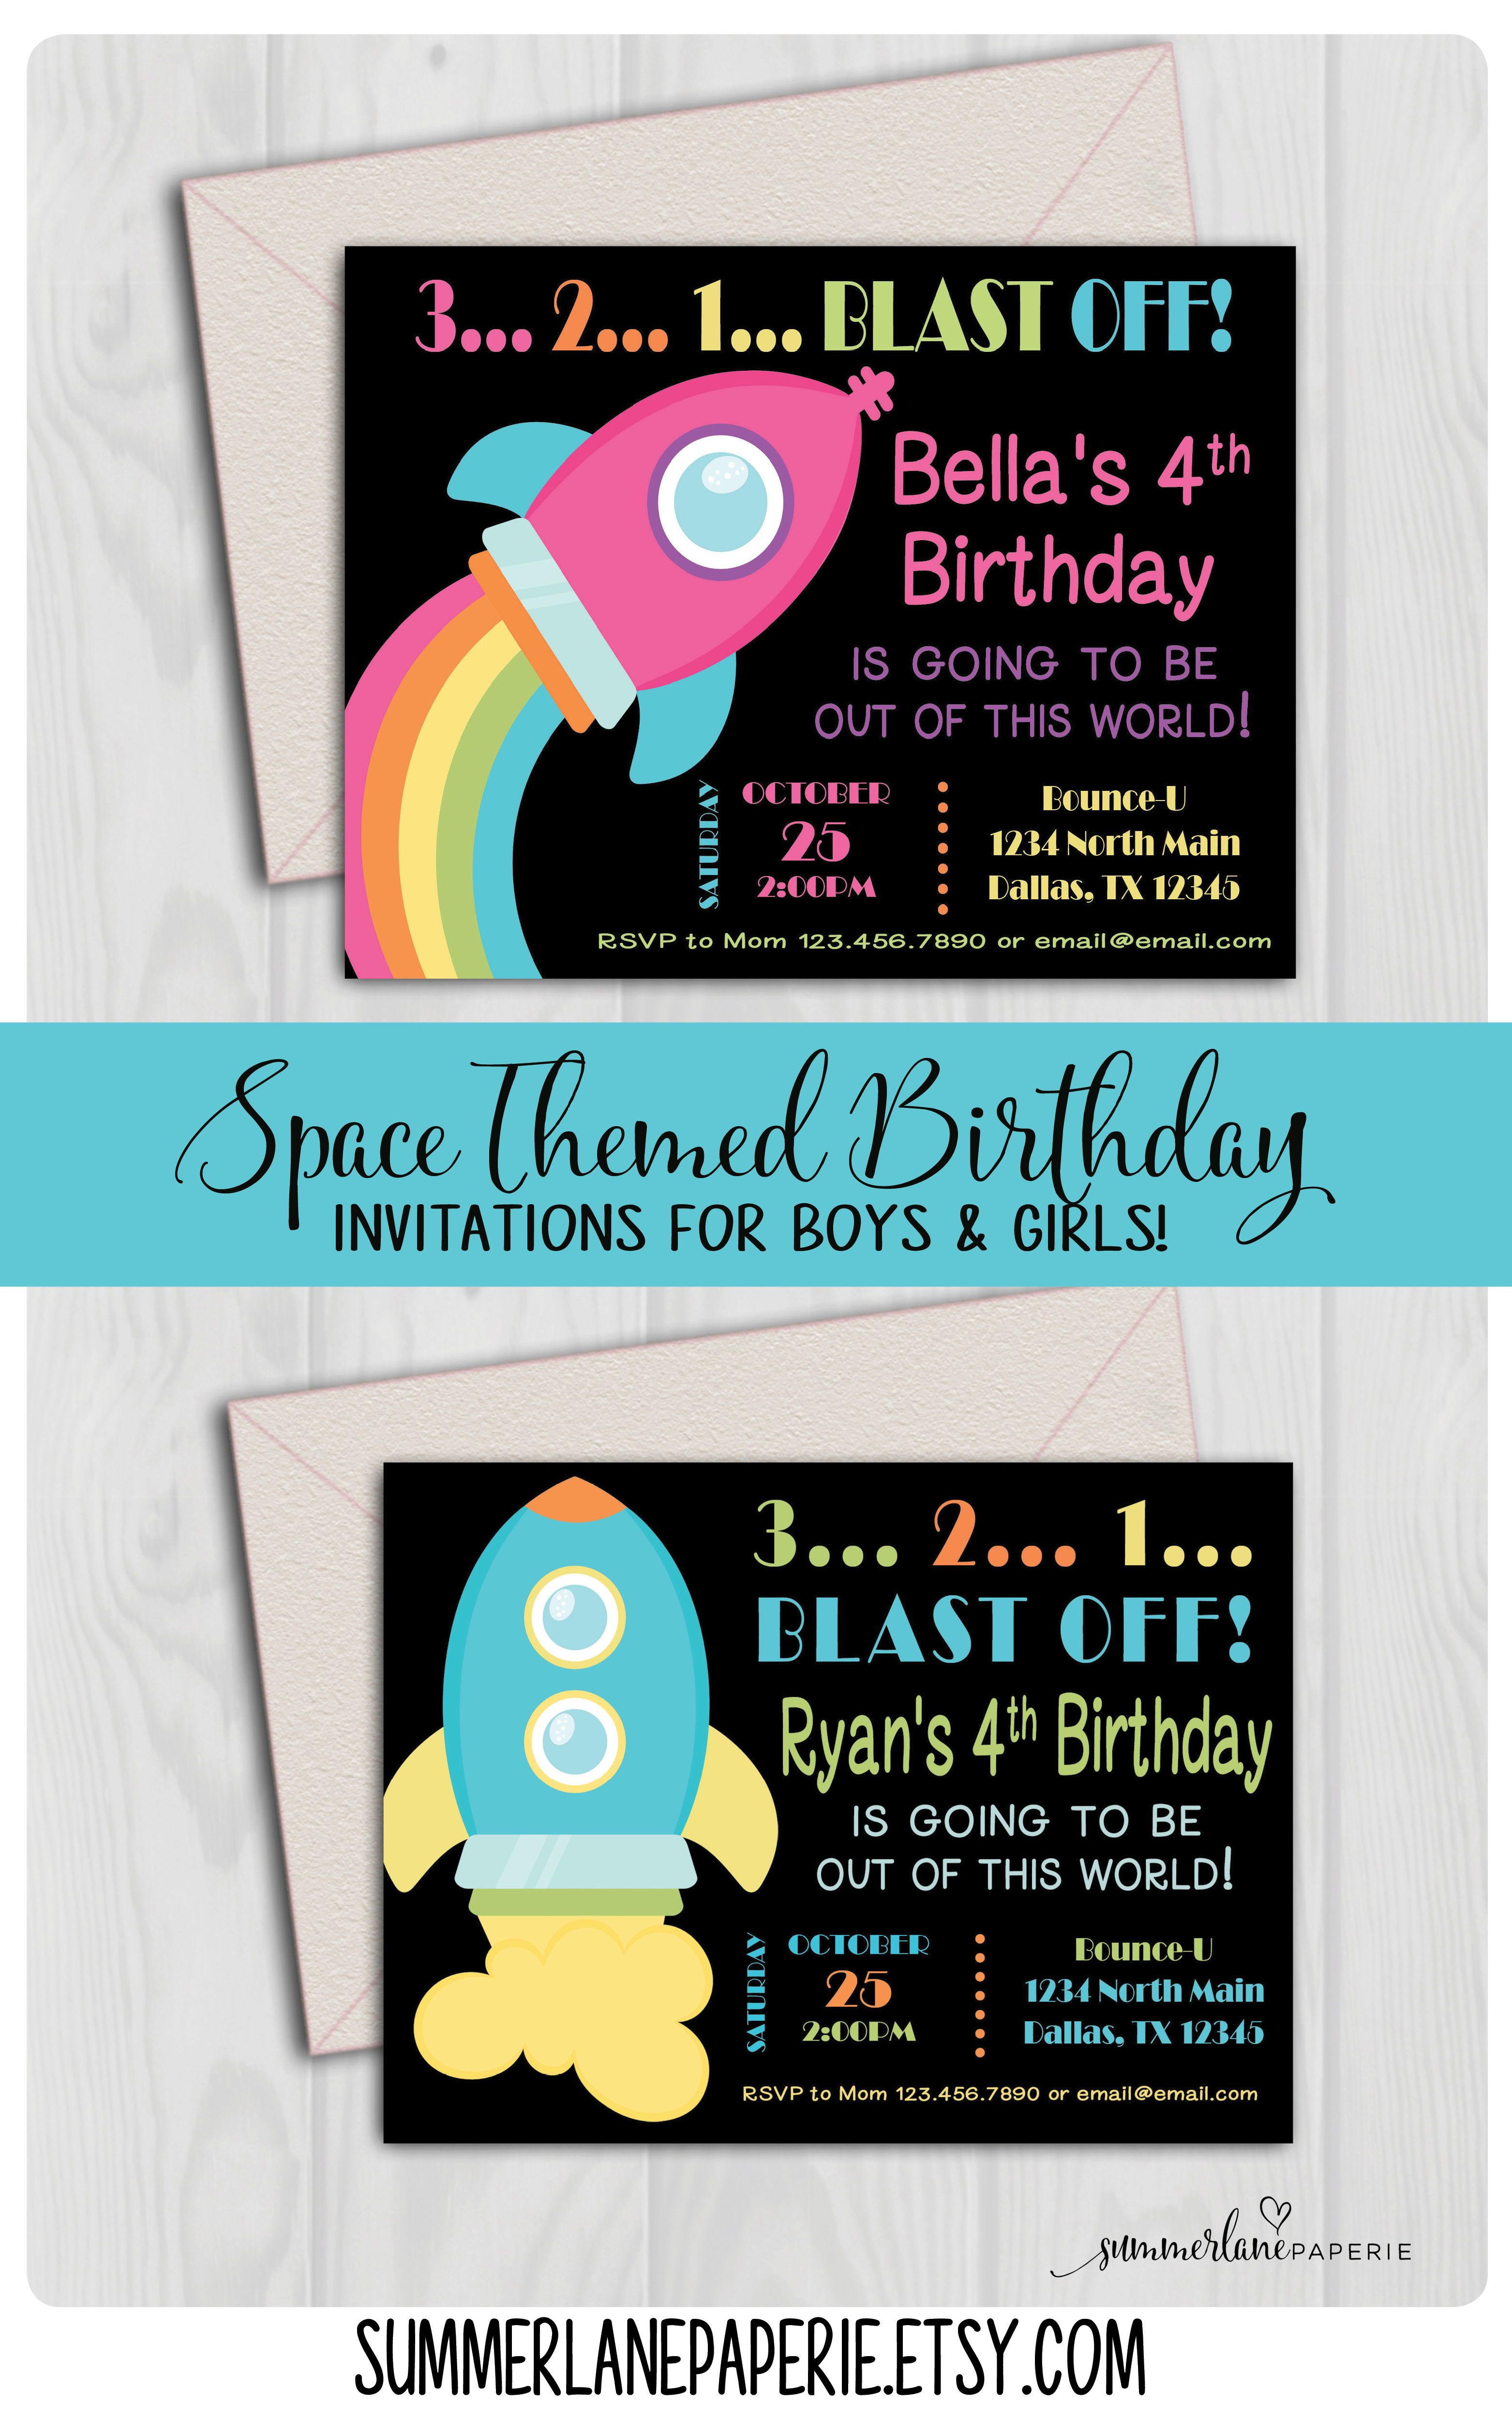 plan a party that is out of this world with these space themed invitations and printables